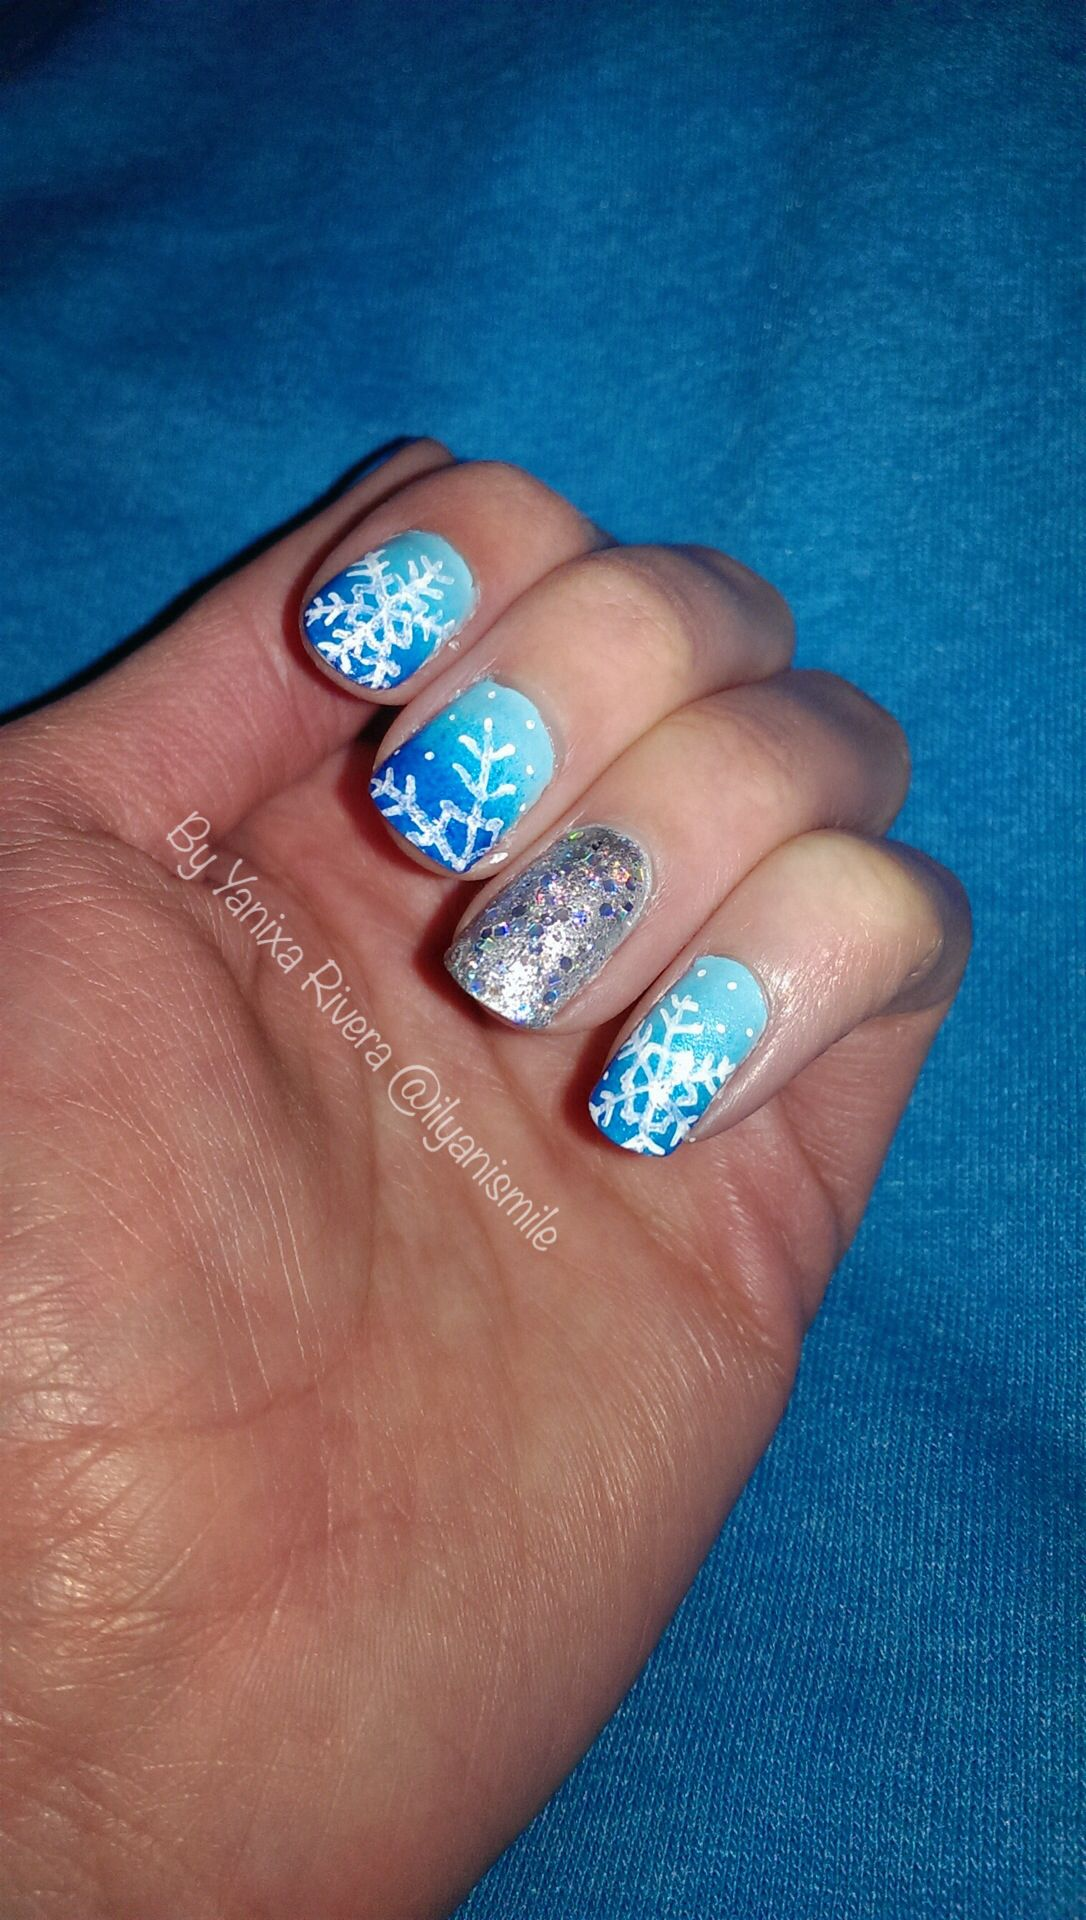 Blue ombré snowflake nails with glitter sequin accent nail. Follow me on instagram @ilyanismile also find me on YouTube.com/ilyanismile